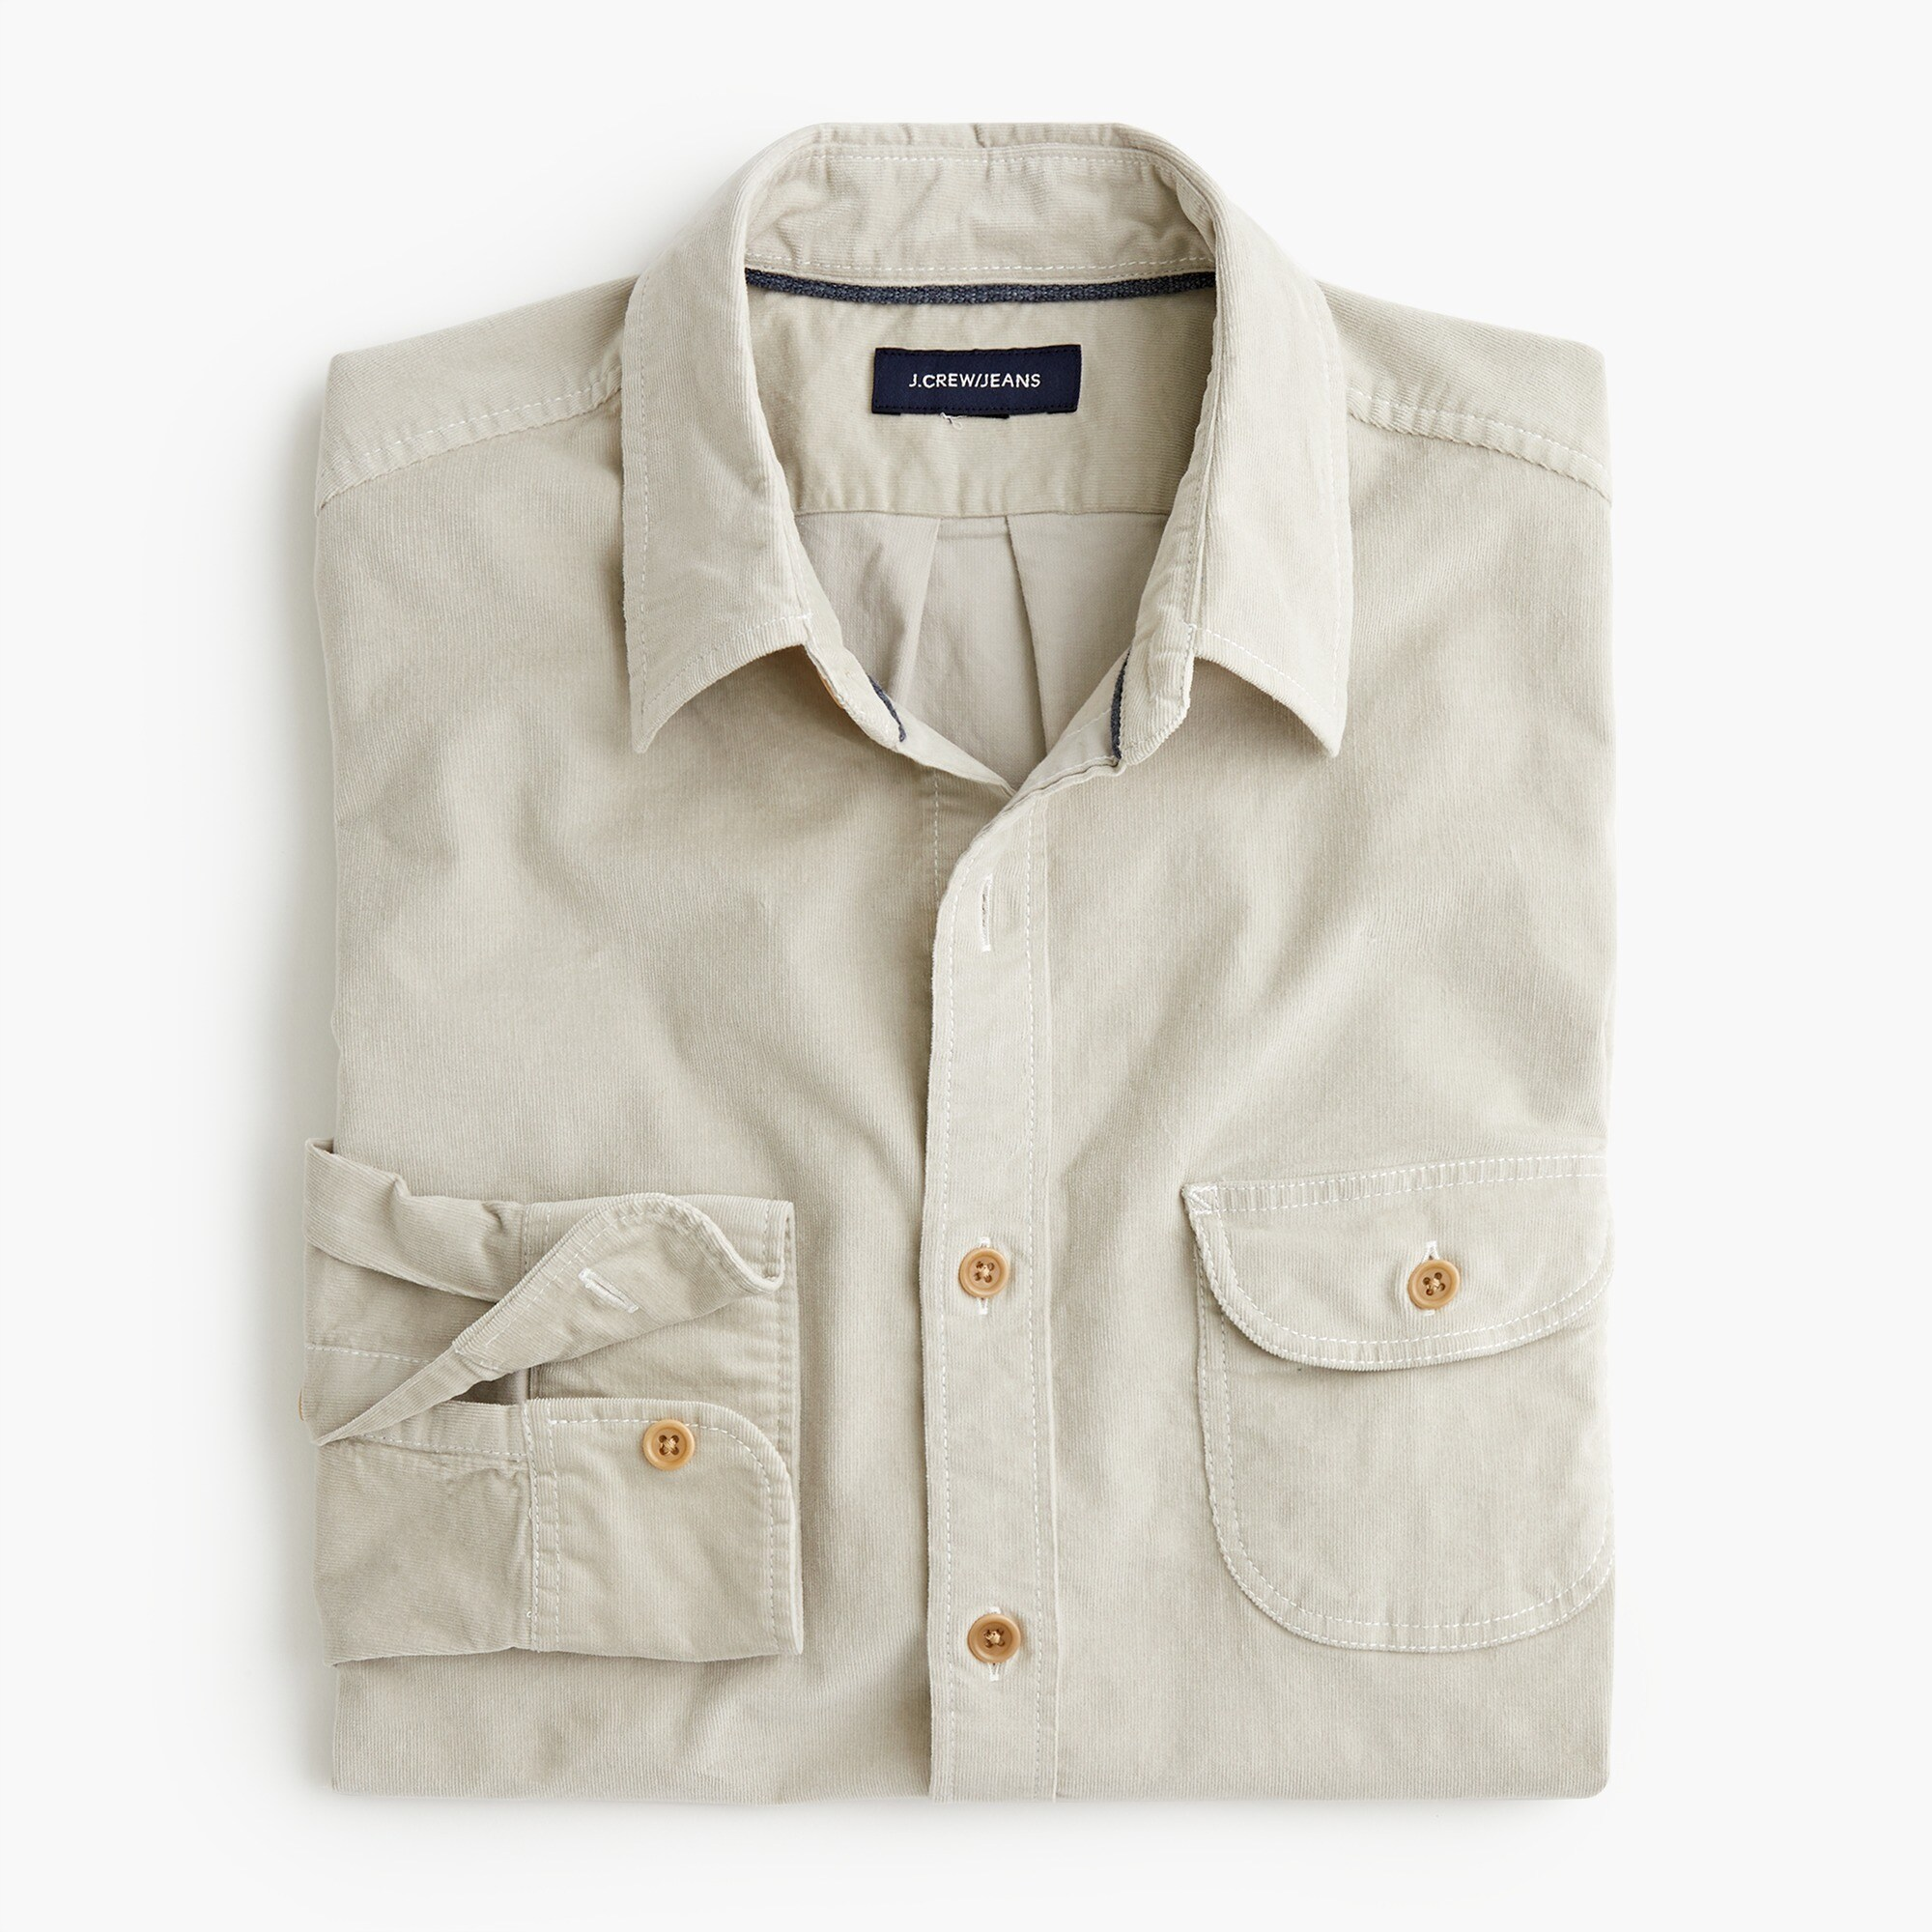 mens Stretch corduroy shirt